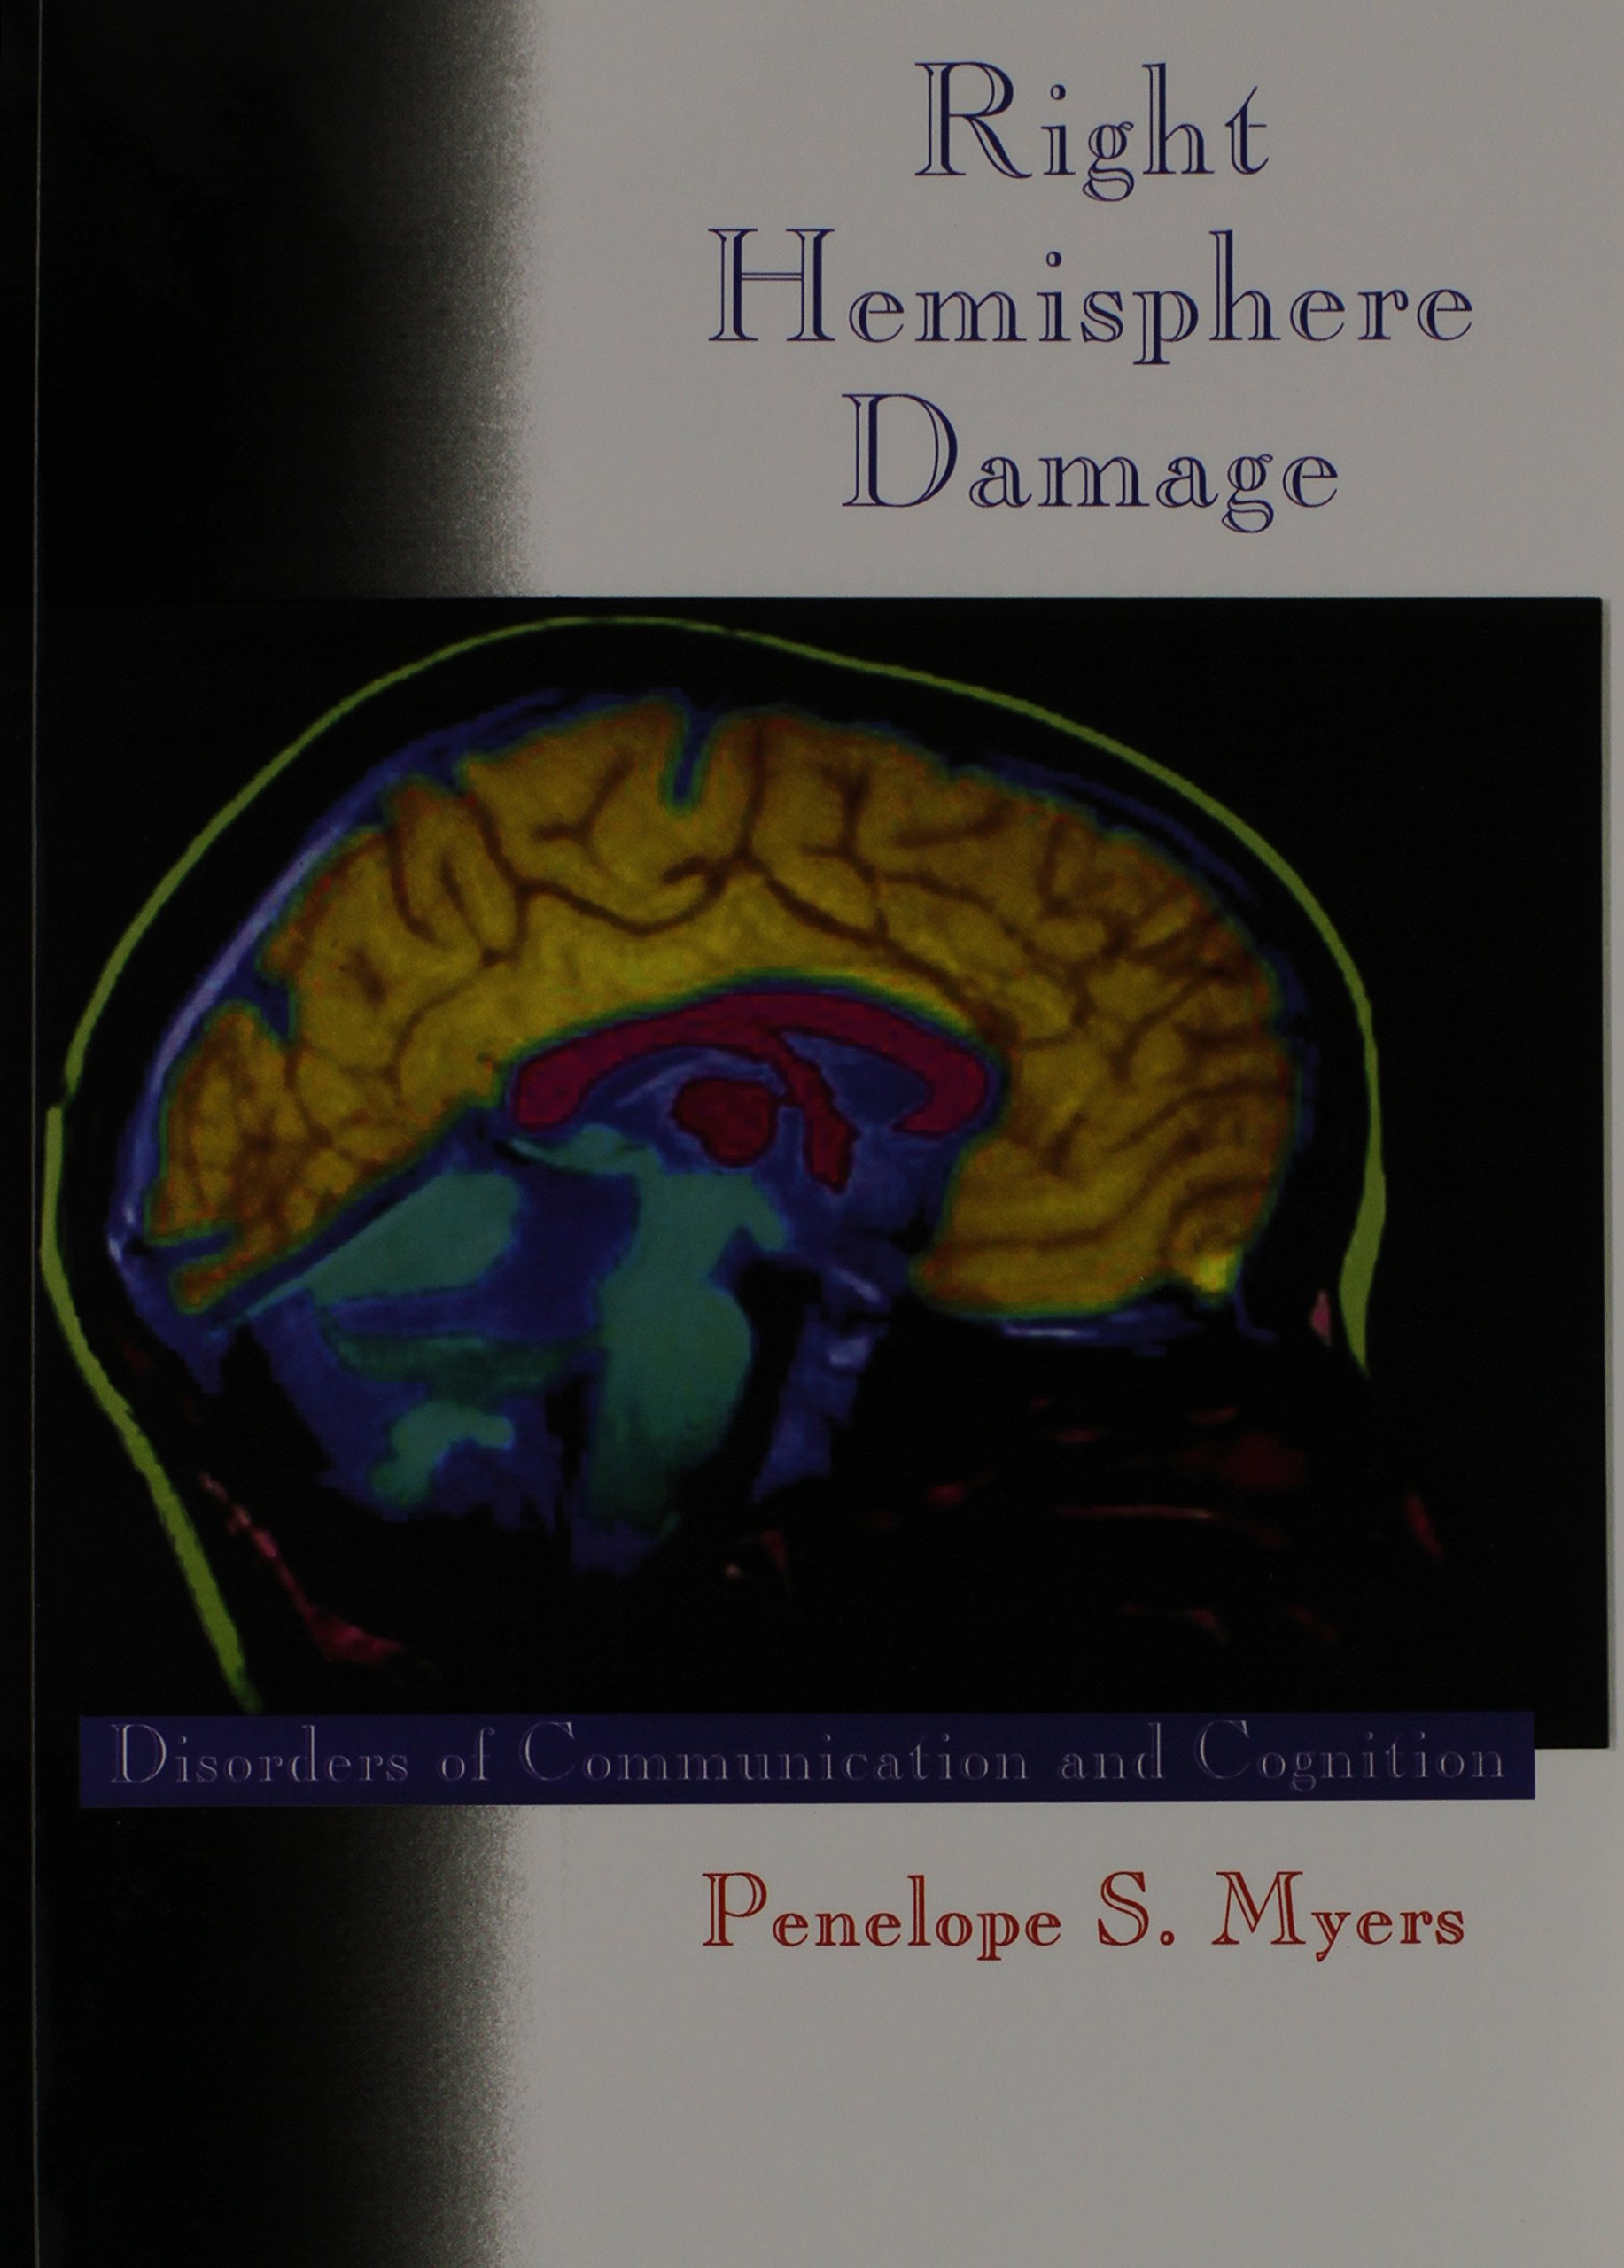 Right Hemisphere Damage: Disorders of Communication and Cognition